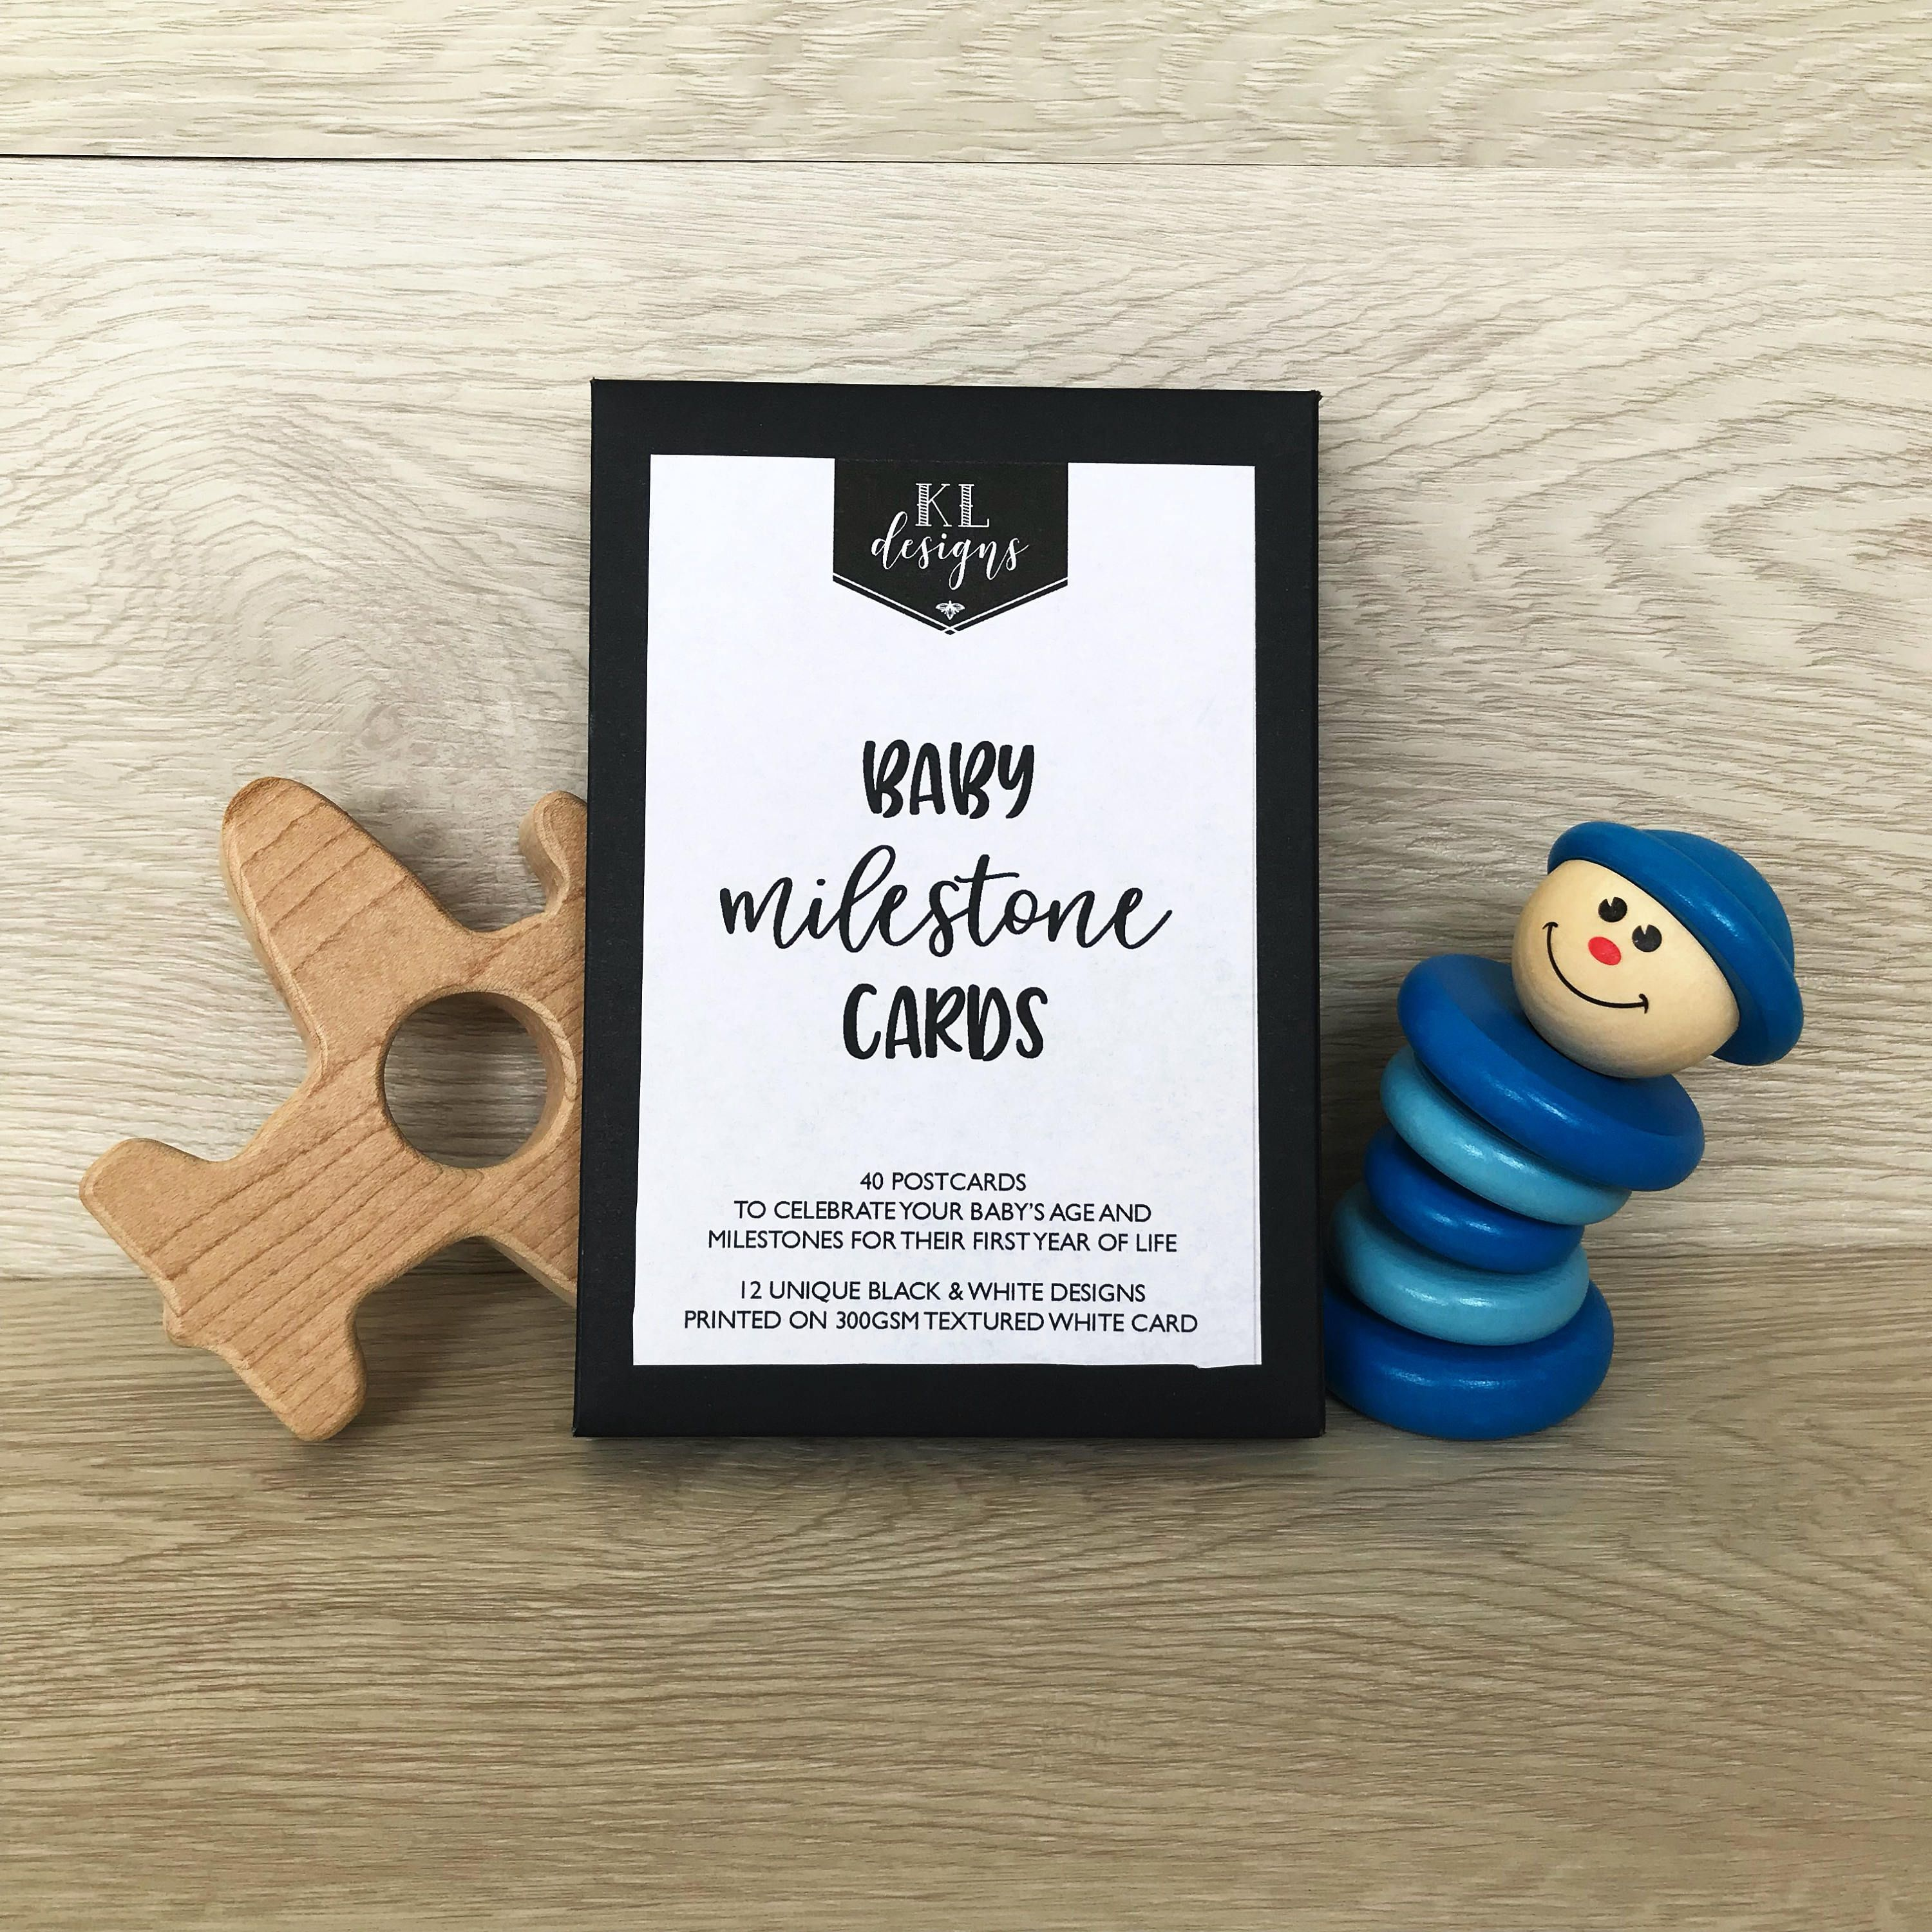 Black and white baby milestone cards box set of 40 cards